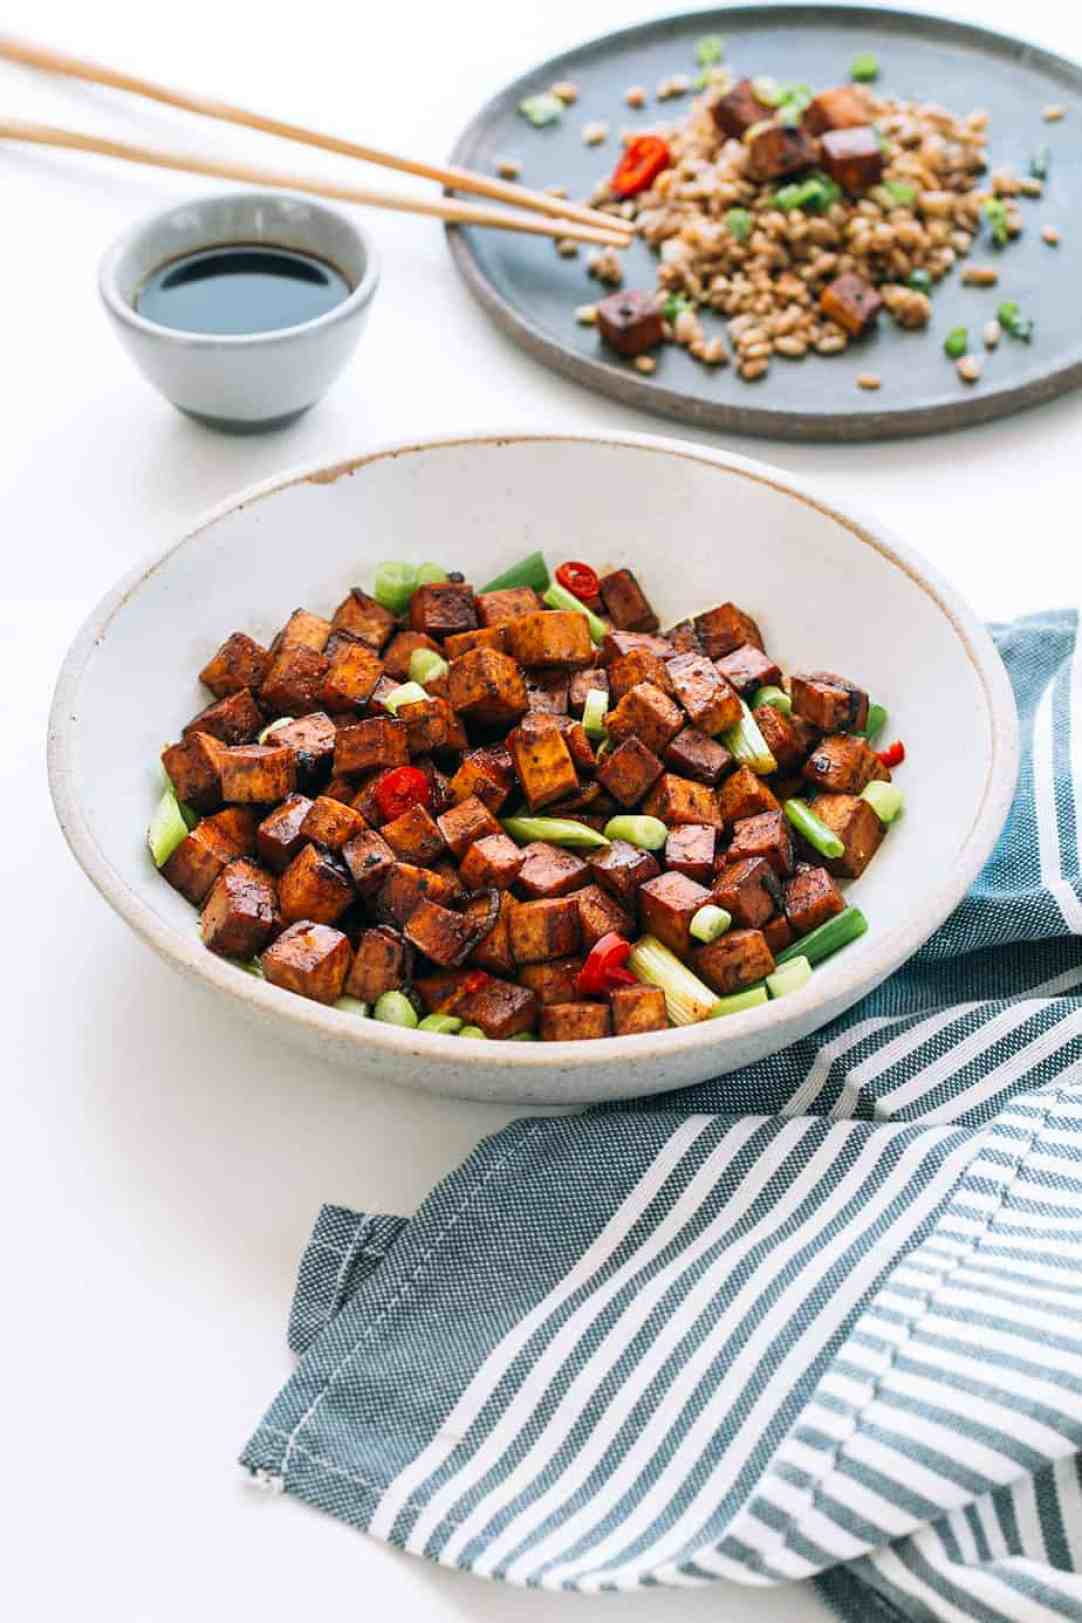 Tofu Stir Fry with Soy Sauce, Garlic and Ginger - Posh Journal